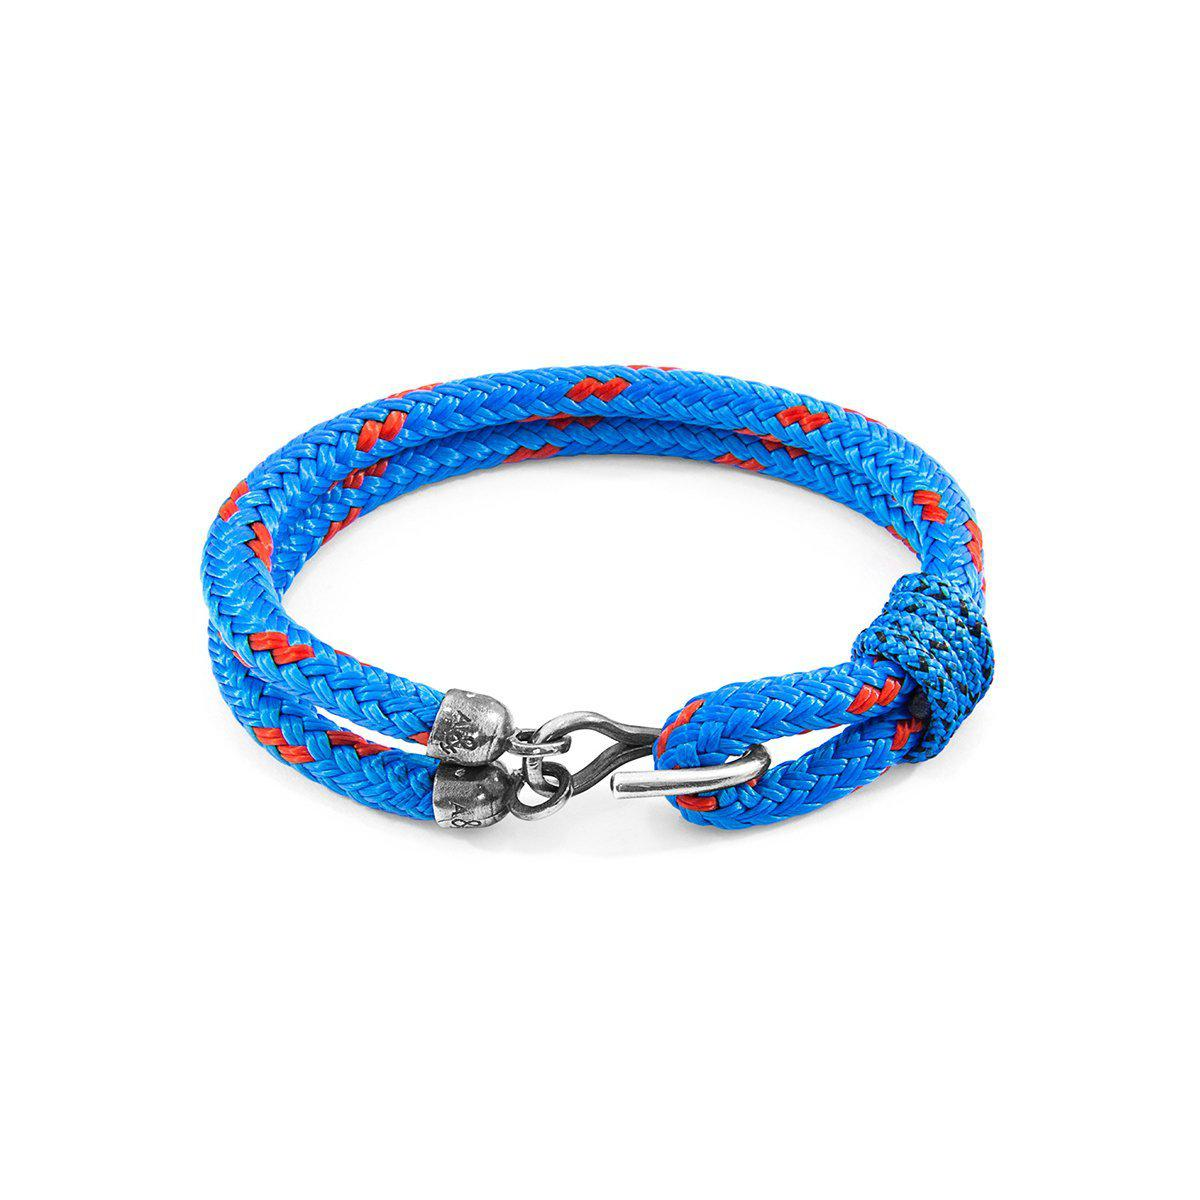 Anchor & Crew Blue Great Yarmouth Silver And Rope Bracelet - 21cm kJ5yI4pD